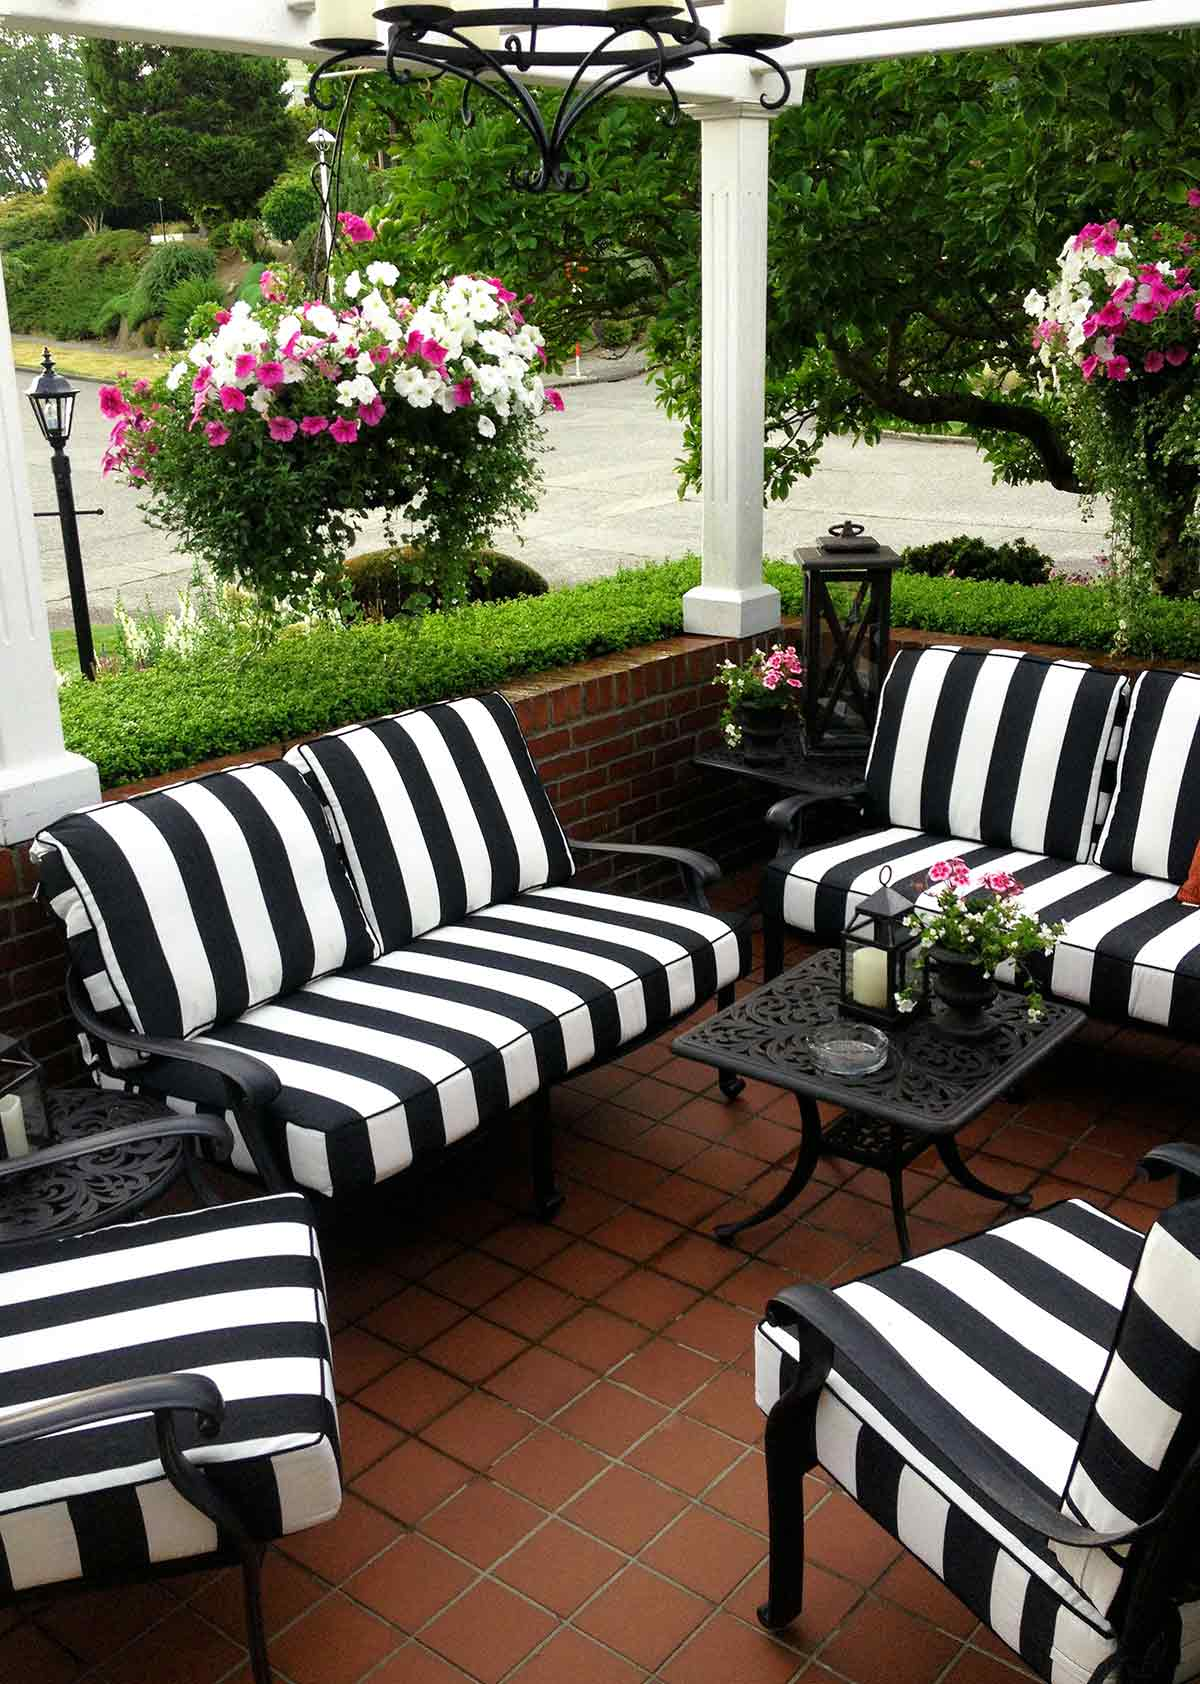 How to Add fort to Your Outdoor Space with Deep Seating